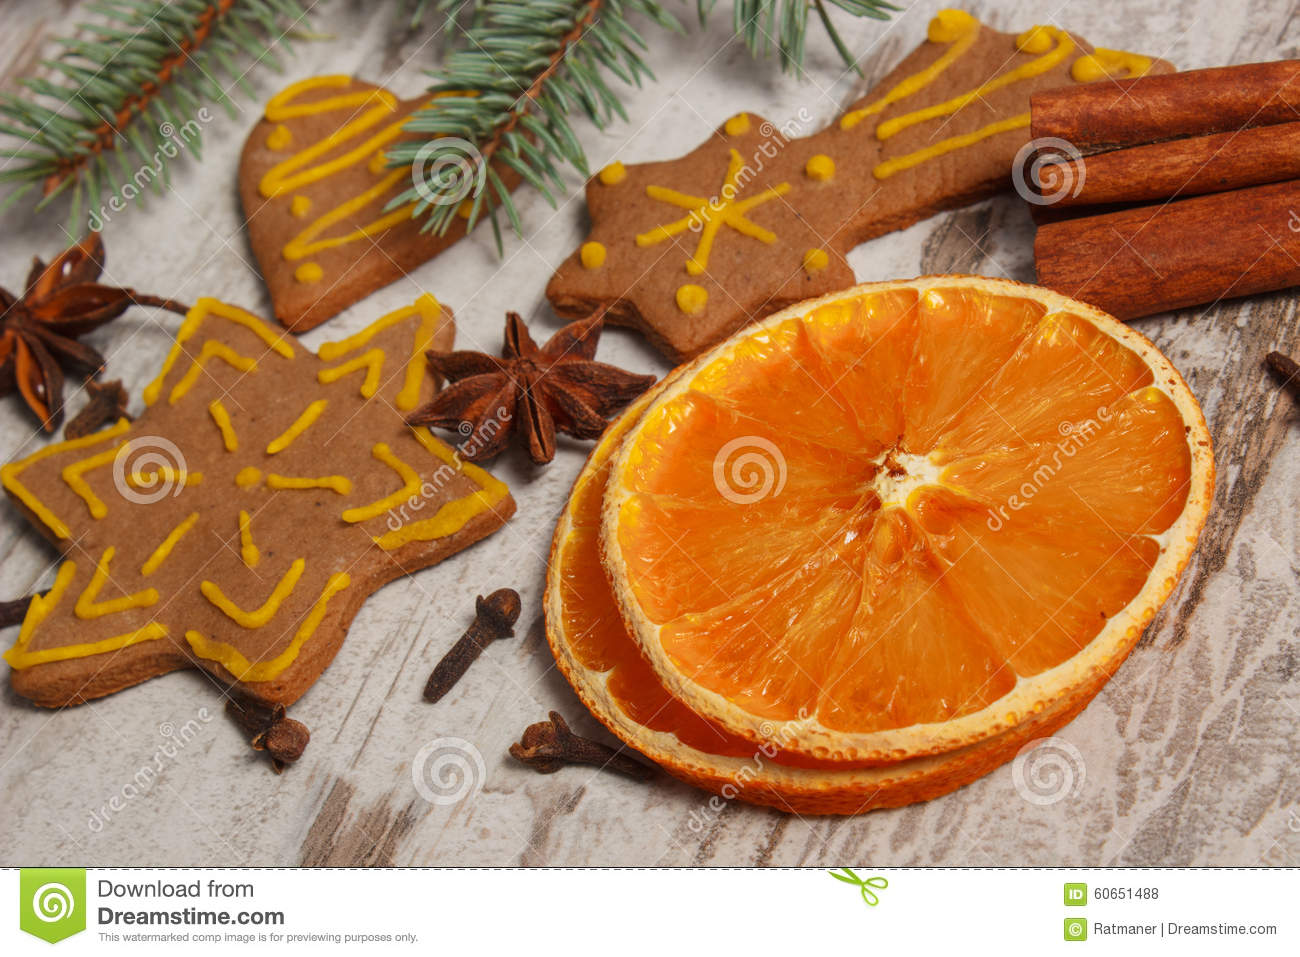 Dried orange spices and decorated gingerbread on old for Baking oranges for christmas decoration